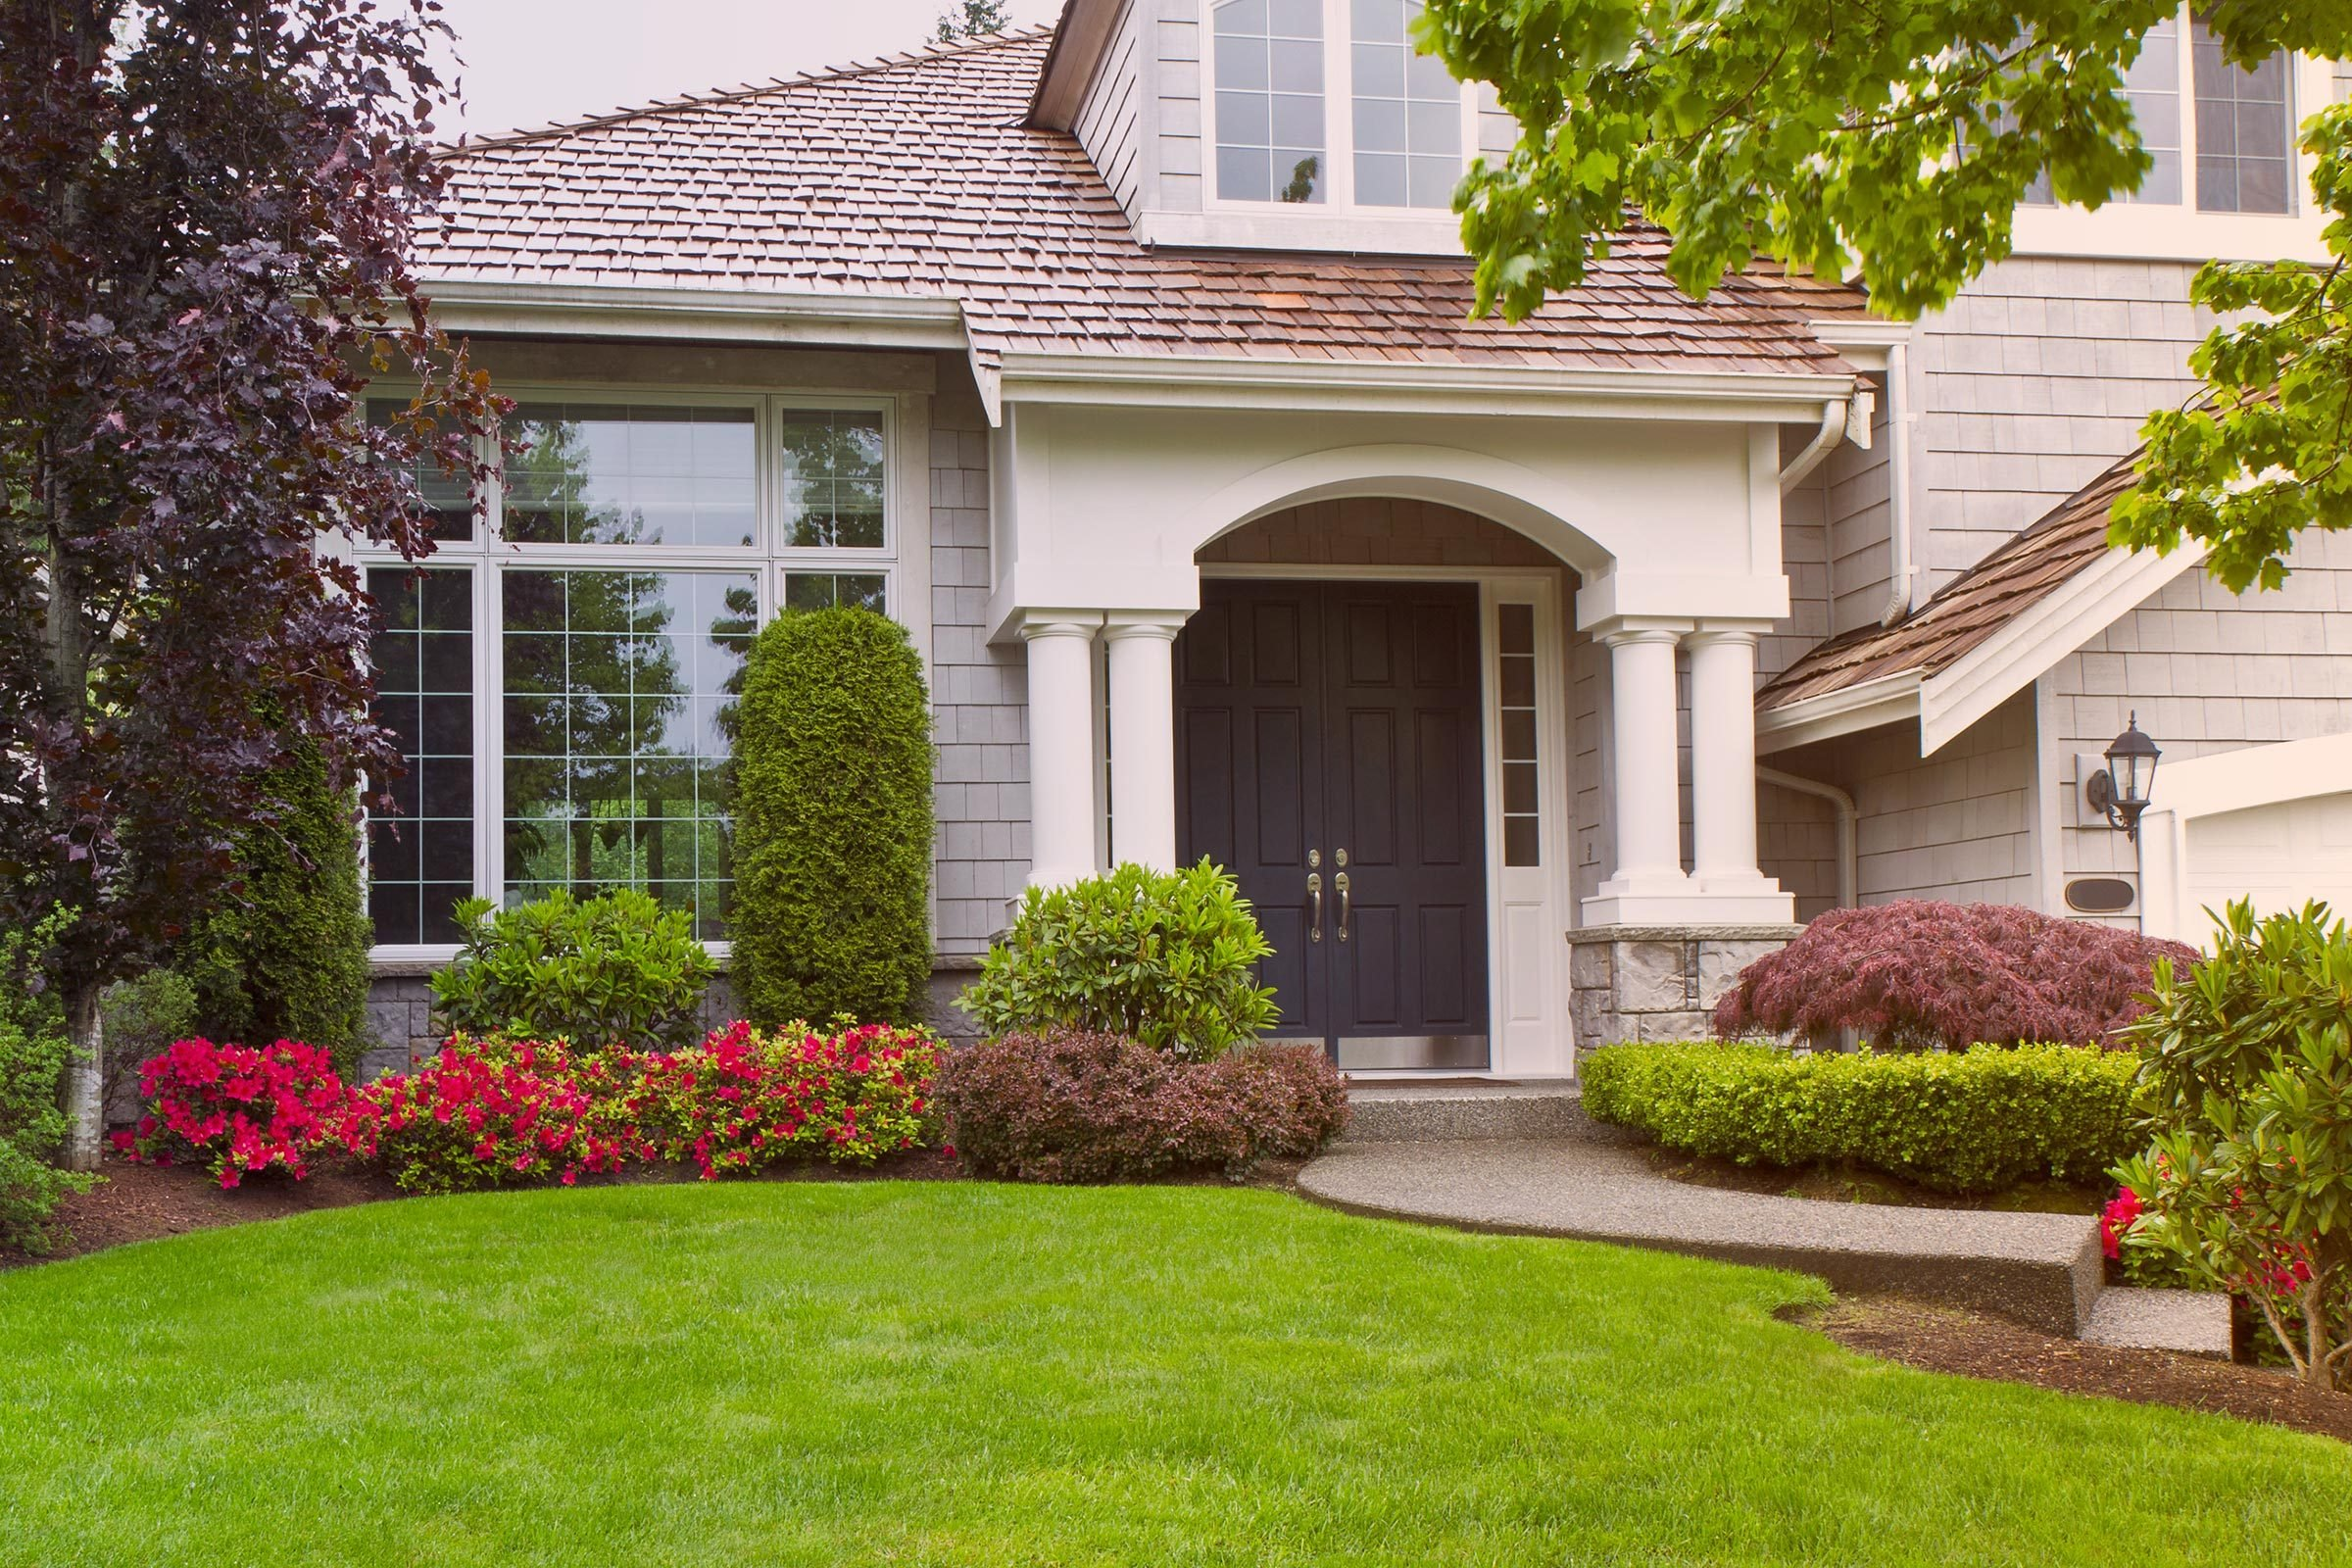 Astounding Diy Landscapers Tend To Make Ir Planting Beds Too Narrow Too Close To Things Your Landscaper Tell You Digest Landscaping Maintenance Companies Near Me Commercial Landscaping Companies Near houzz-02 Landscaping Companies Near Me